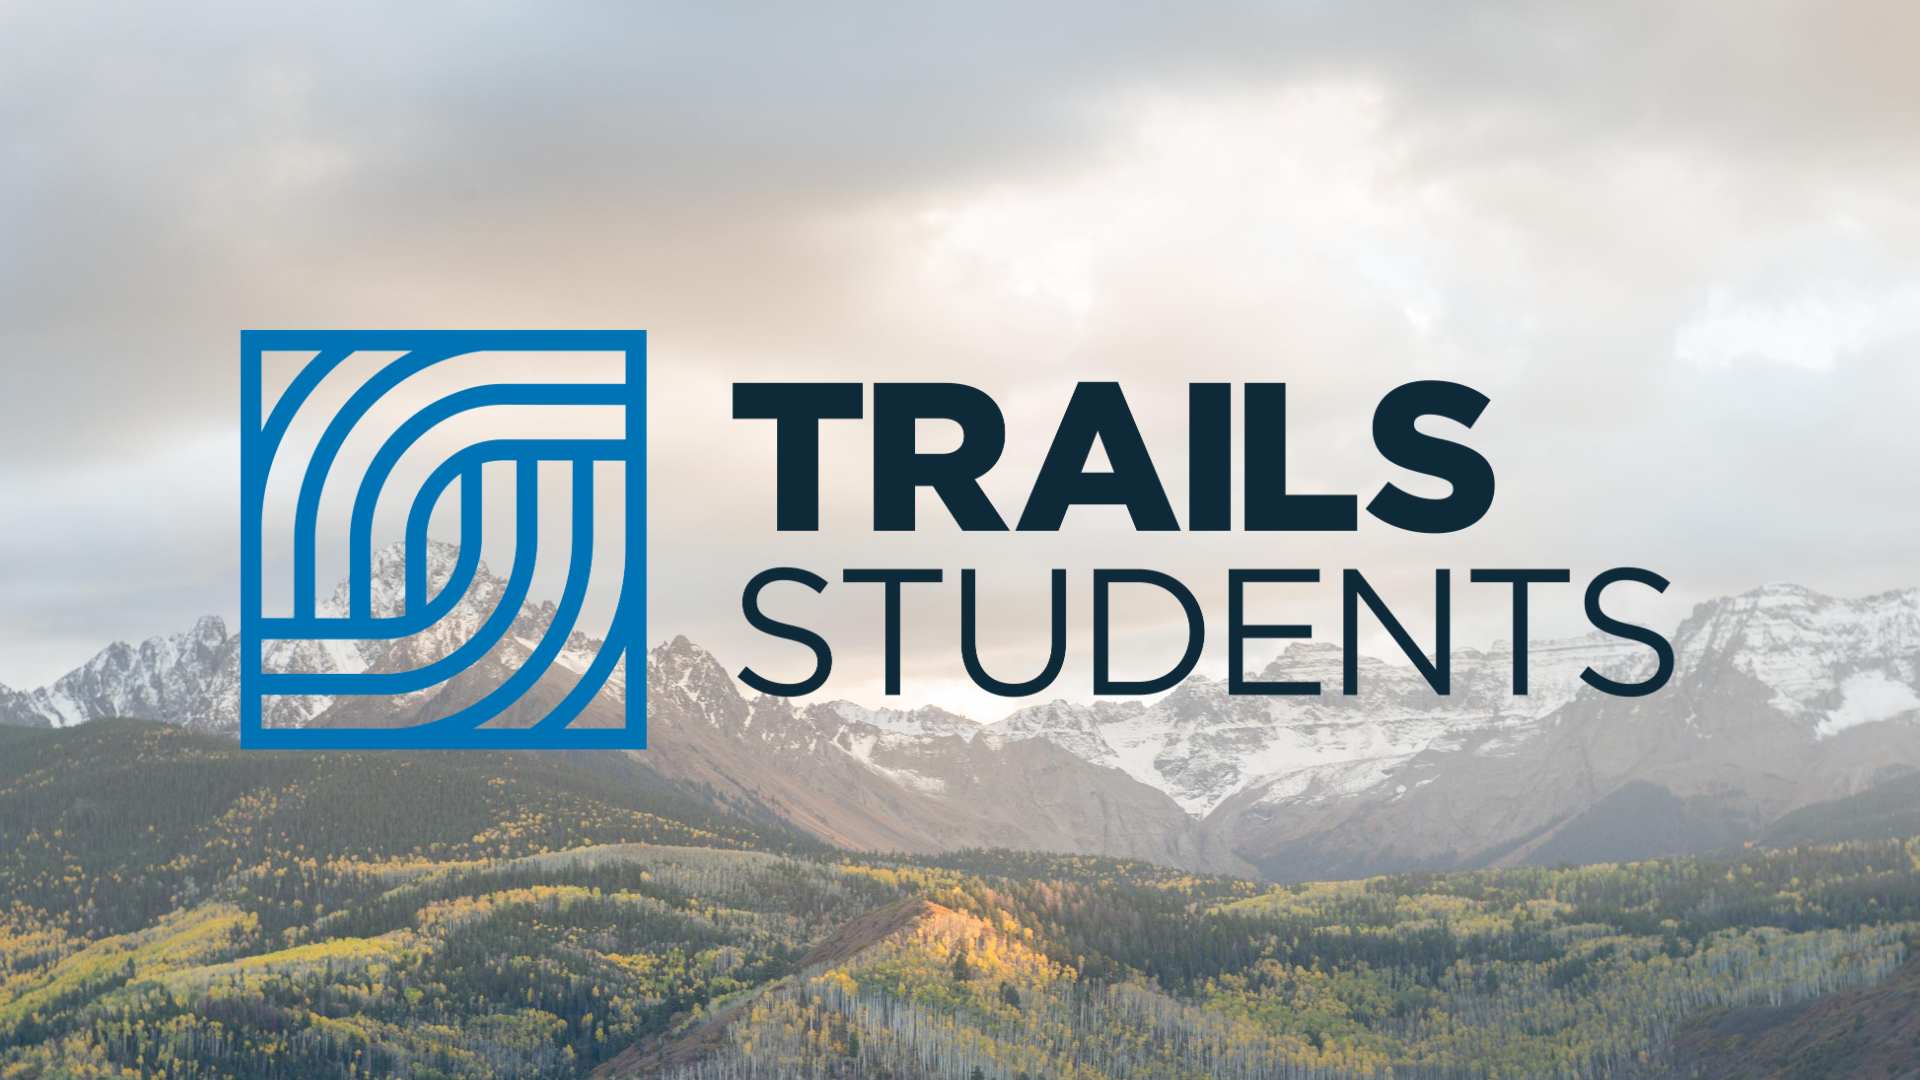 Trails Students Fall 2020 image